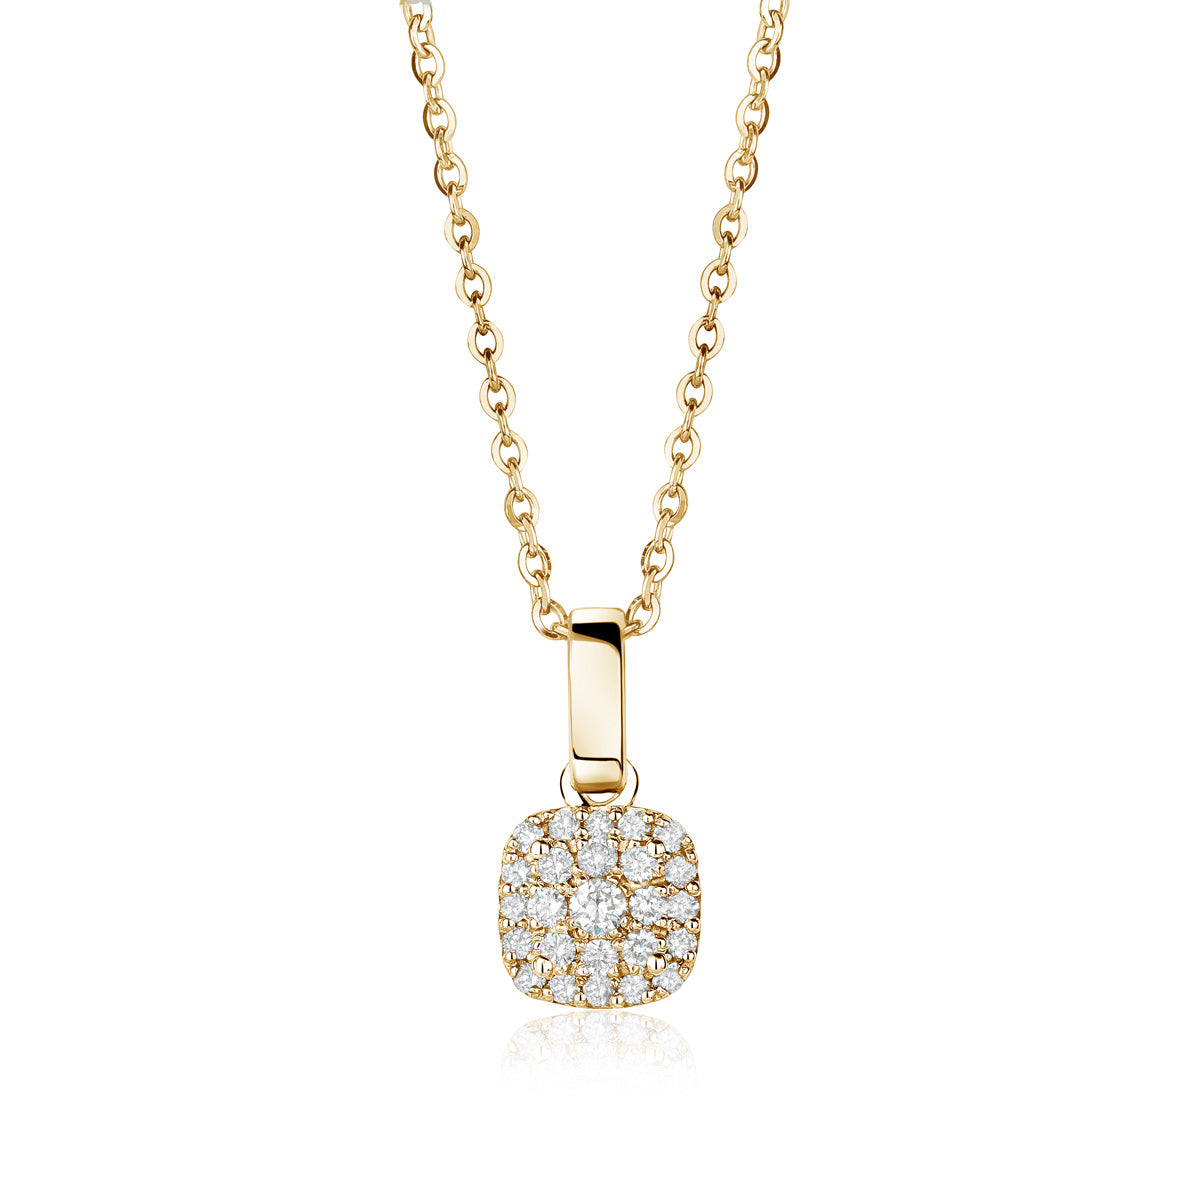 Yellow gold cushion cluster diamond pendant by Jessica Jewellery.